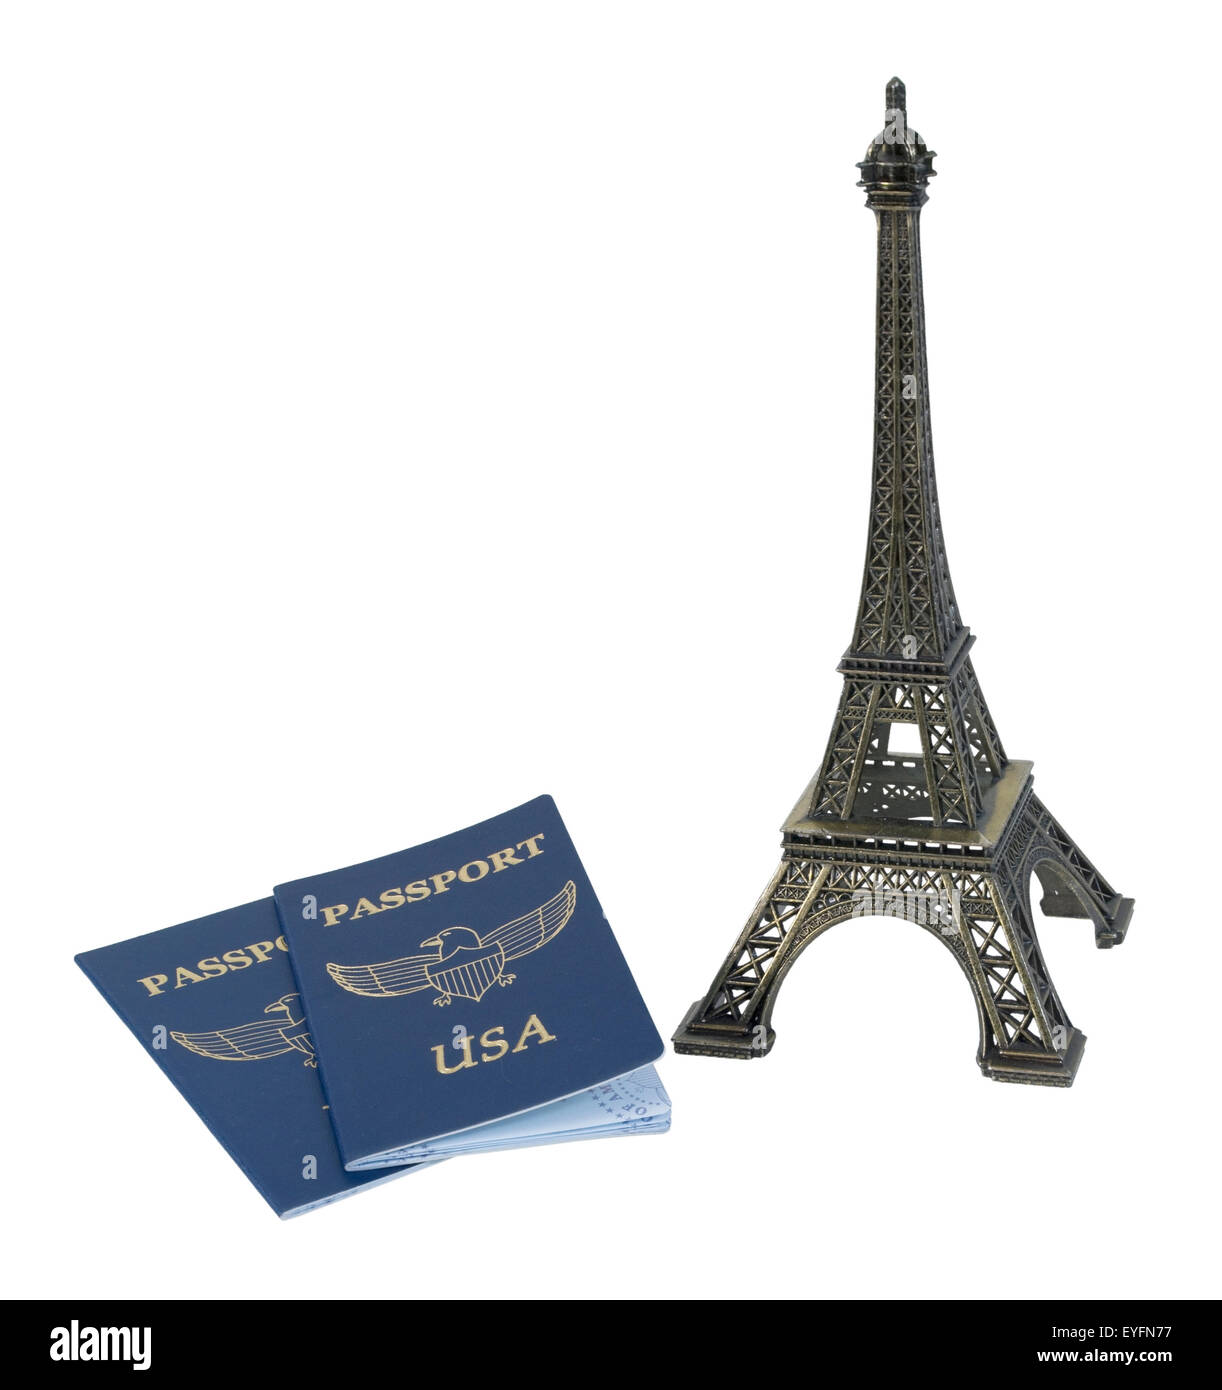 Metal Eiffel Tower model and a traveling passport - path included Stock Photo